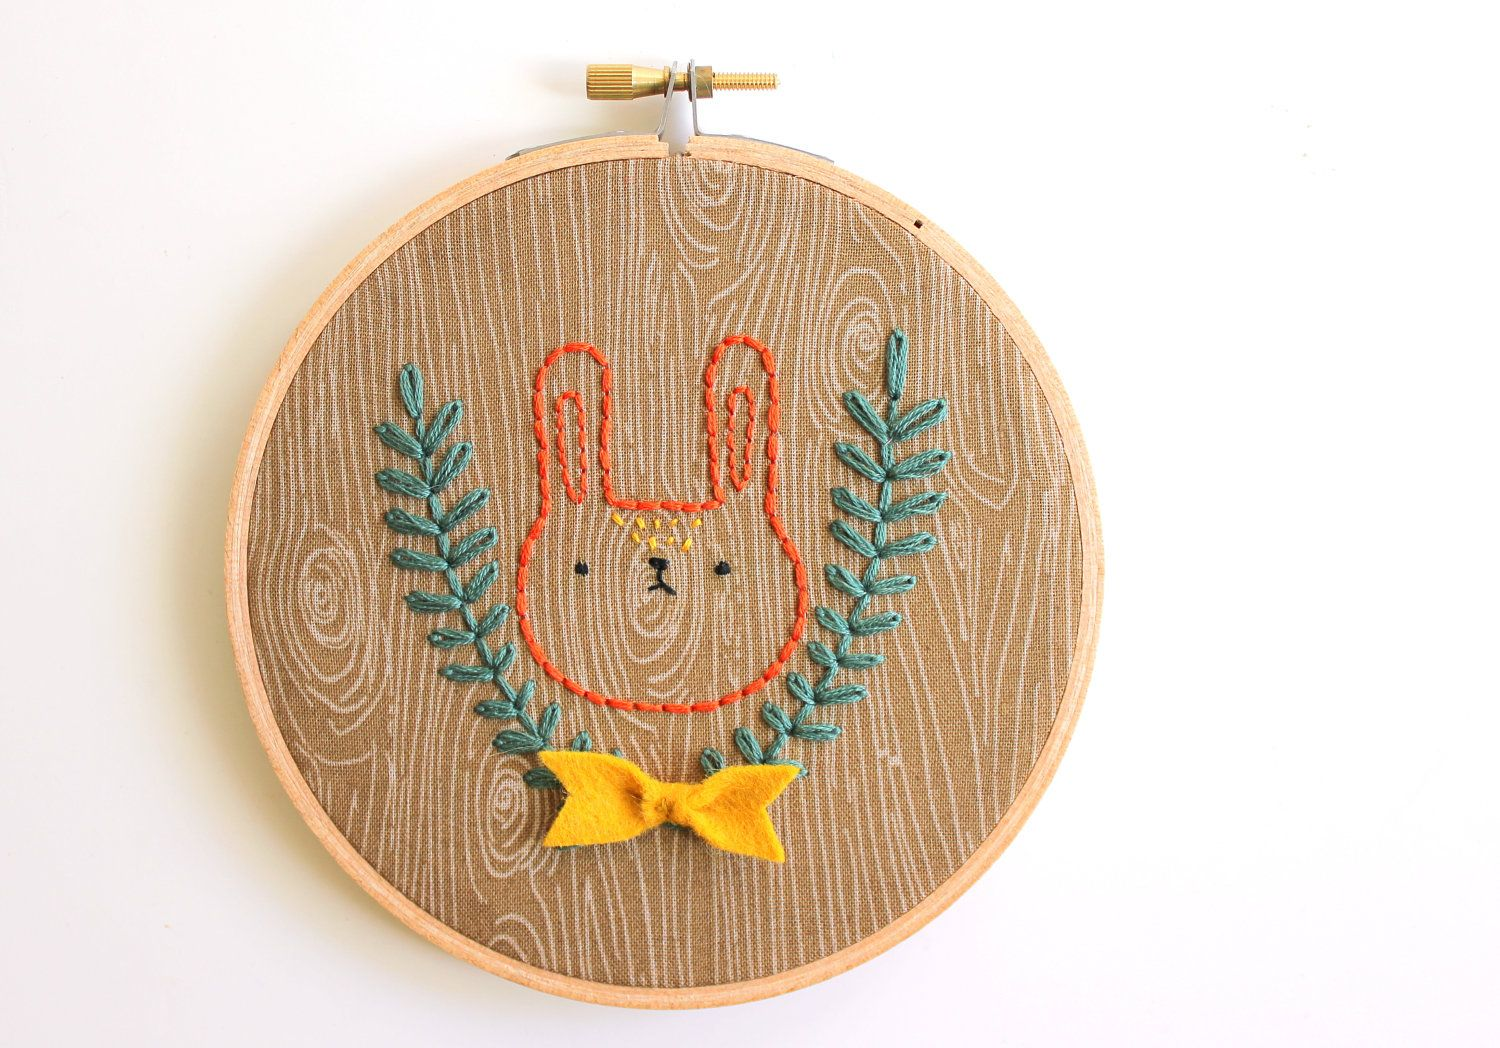 Faux Bois Camping Bunny - Hand Embroidered Wall Art - Made to Order